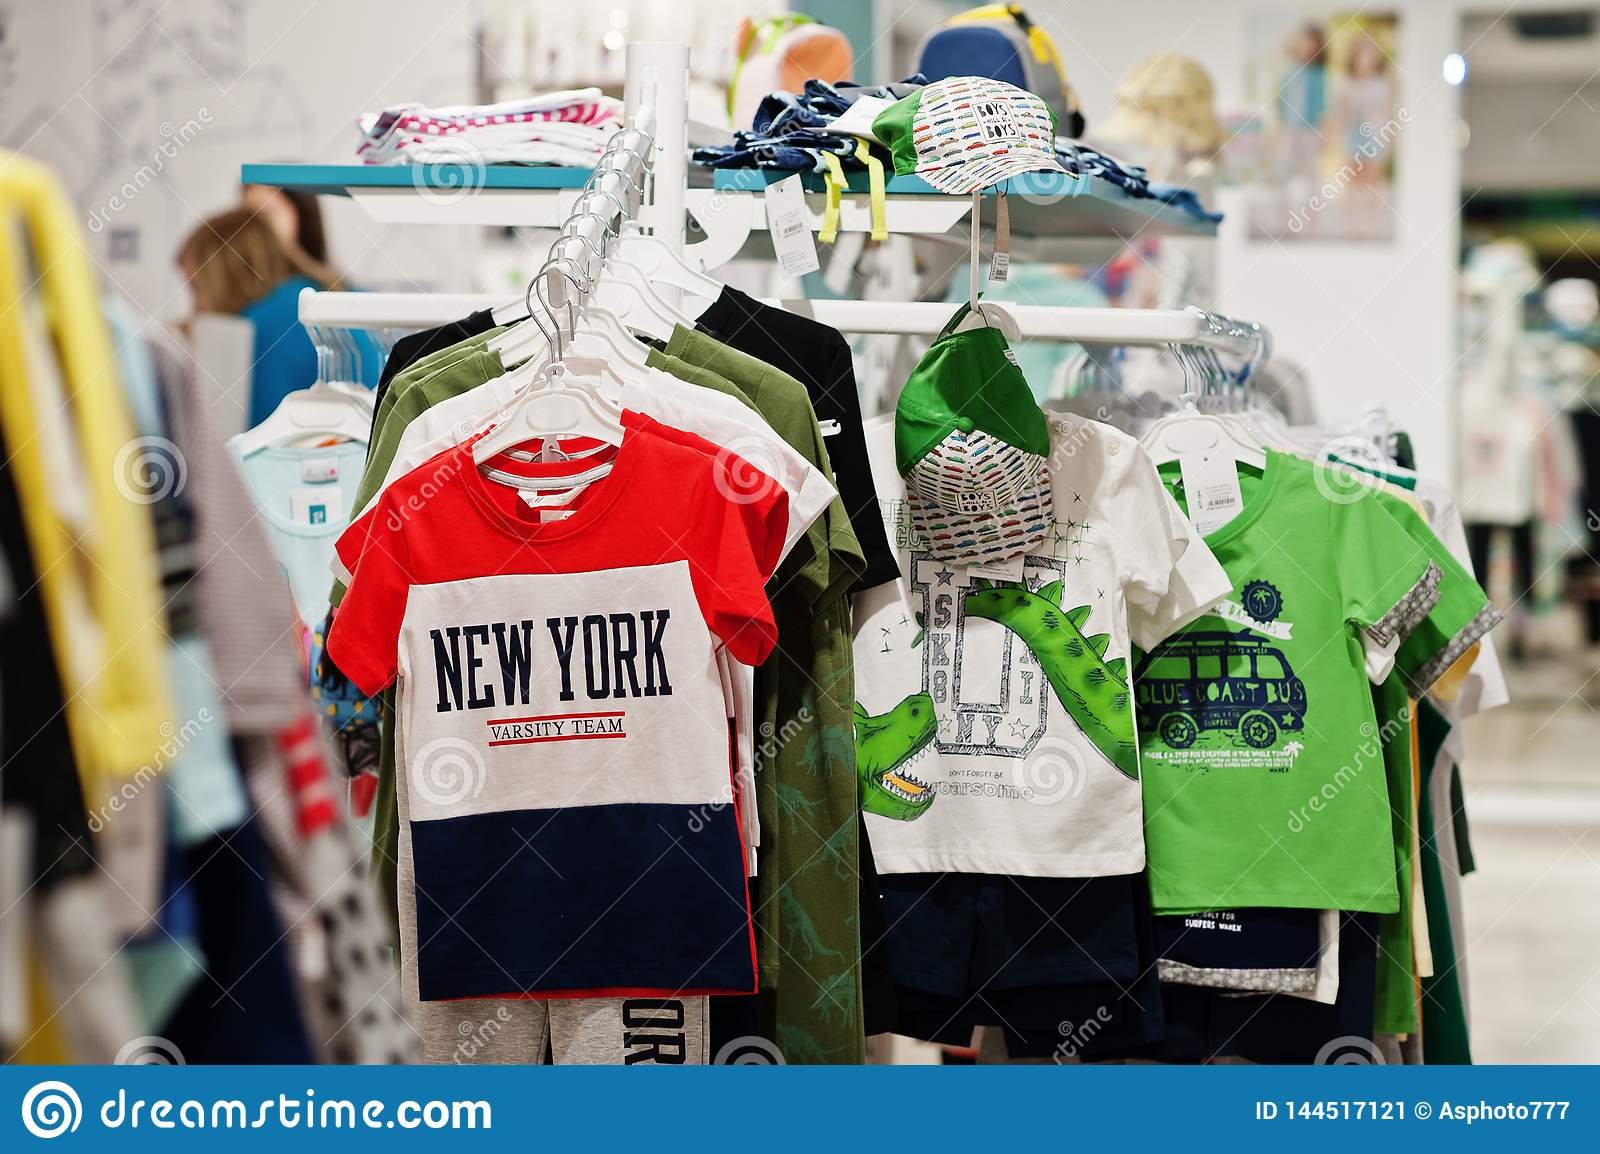 fb98f542b Children`s bright clothes hang on the display in the baby clothing store.  Boys section.